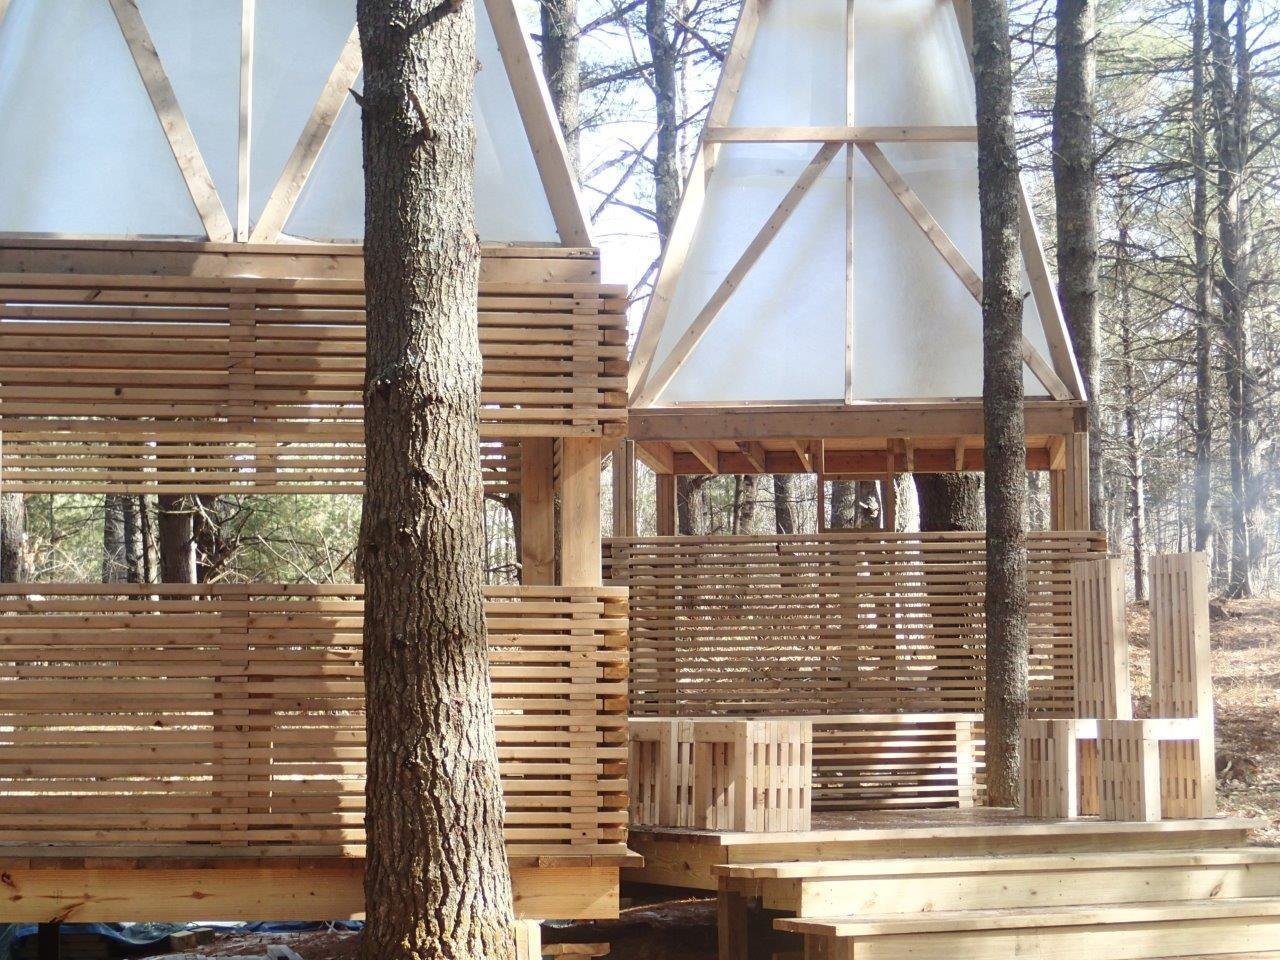 Photo 1 of 5 in Shop Class Rebooted: Students Built This Woodland Retreat